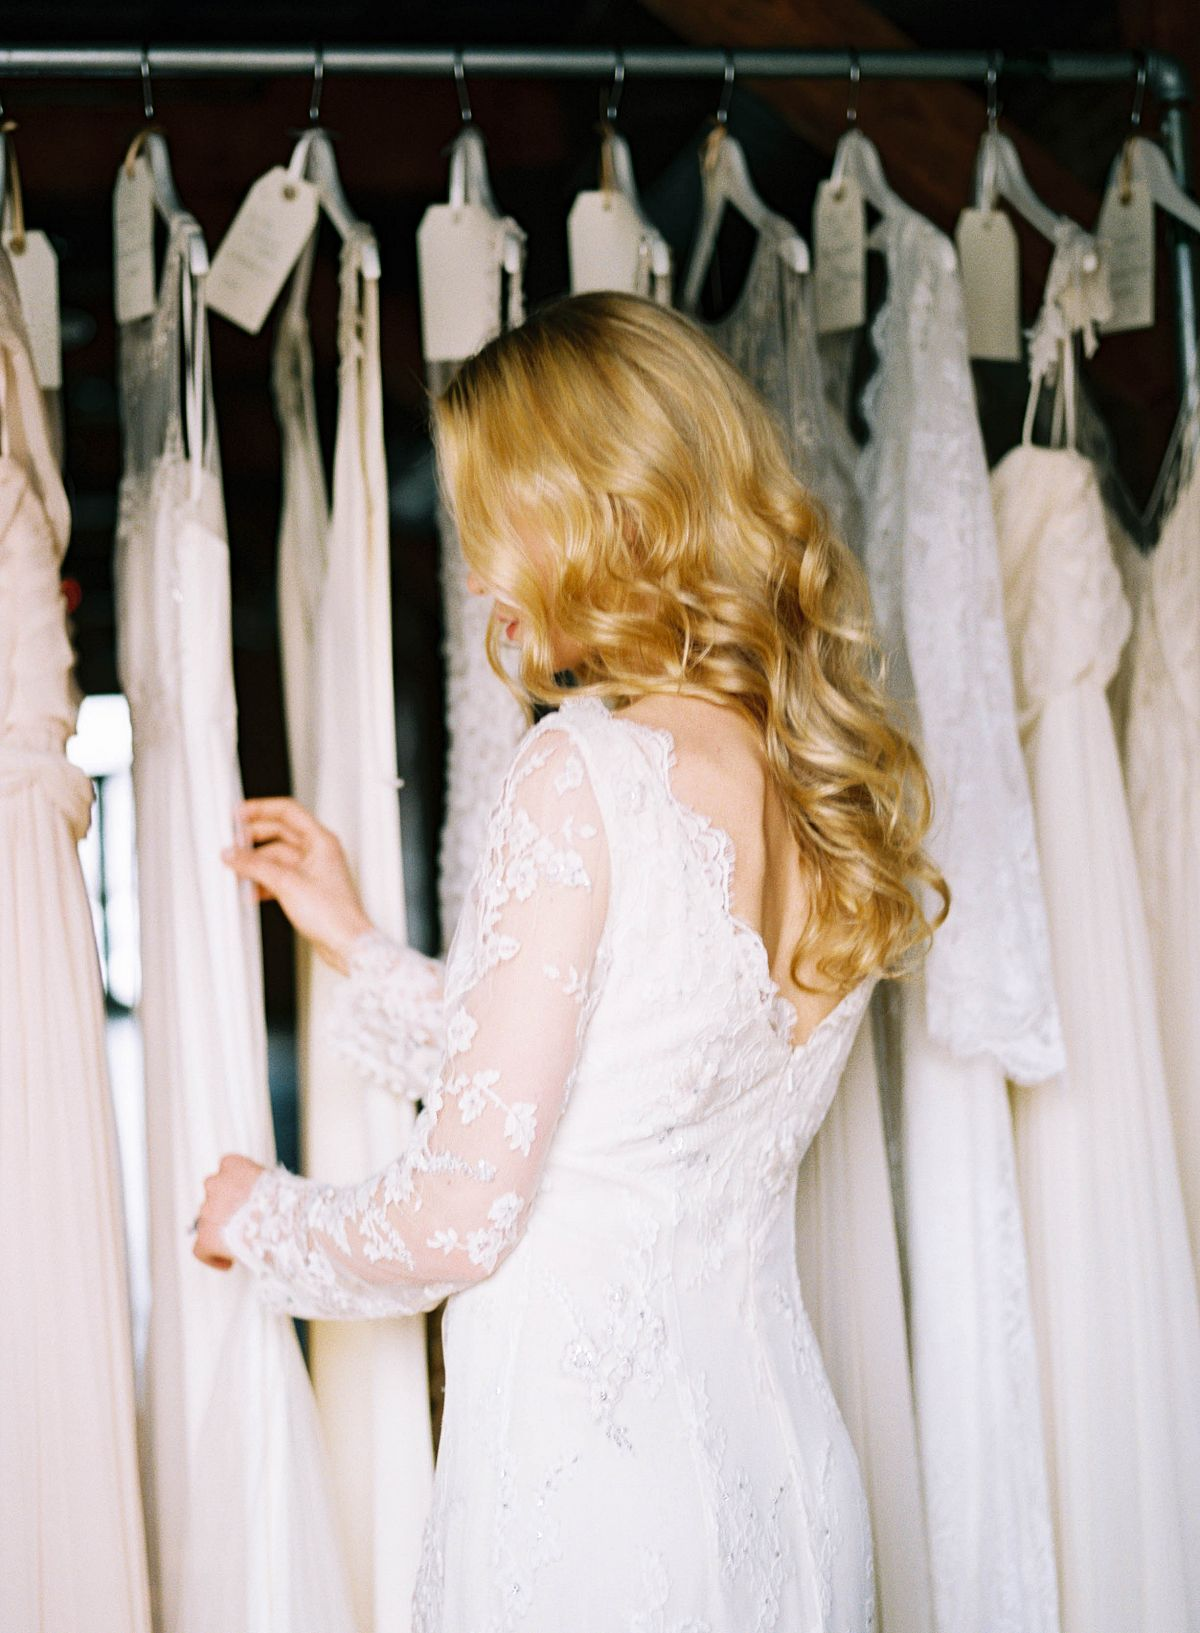 Wedding Dress Shopping Tips From The Dress Theory On